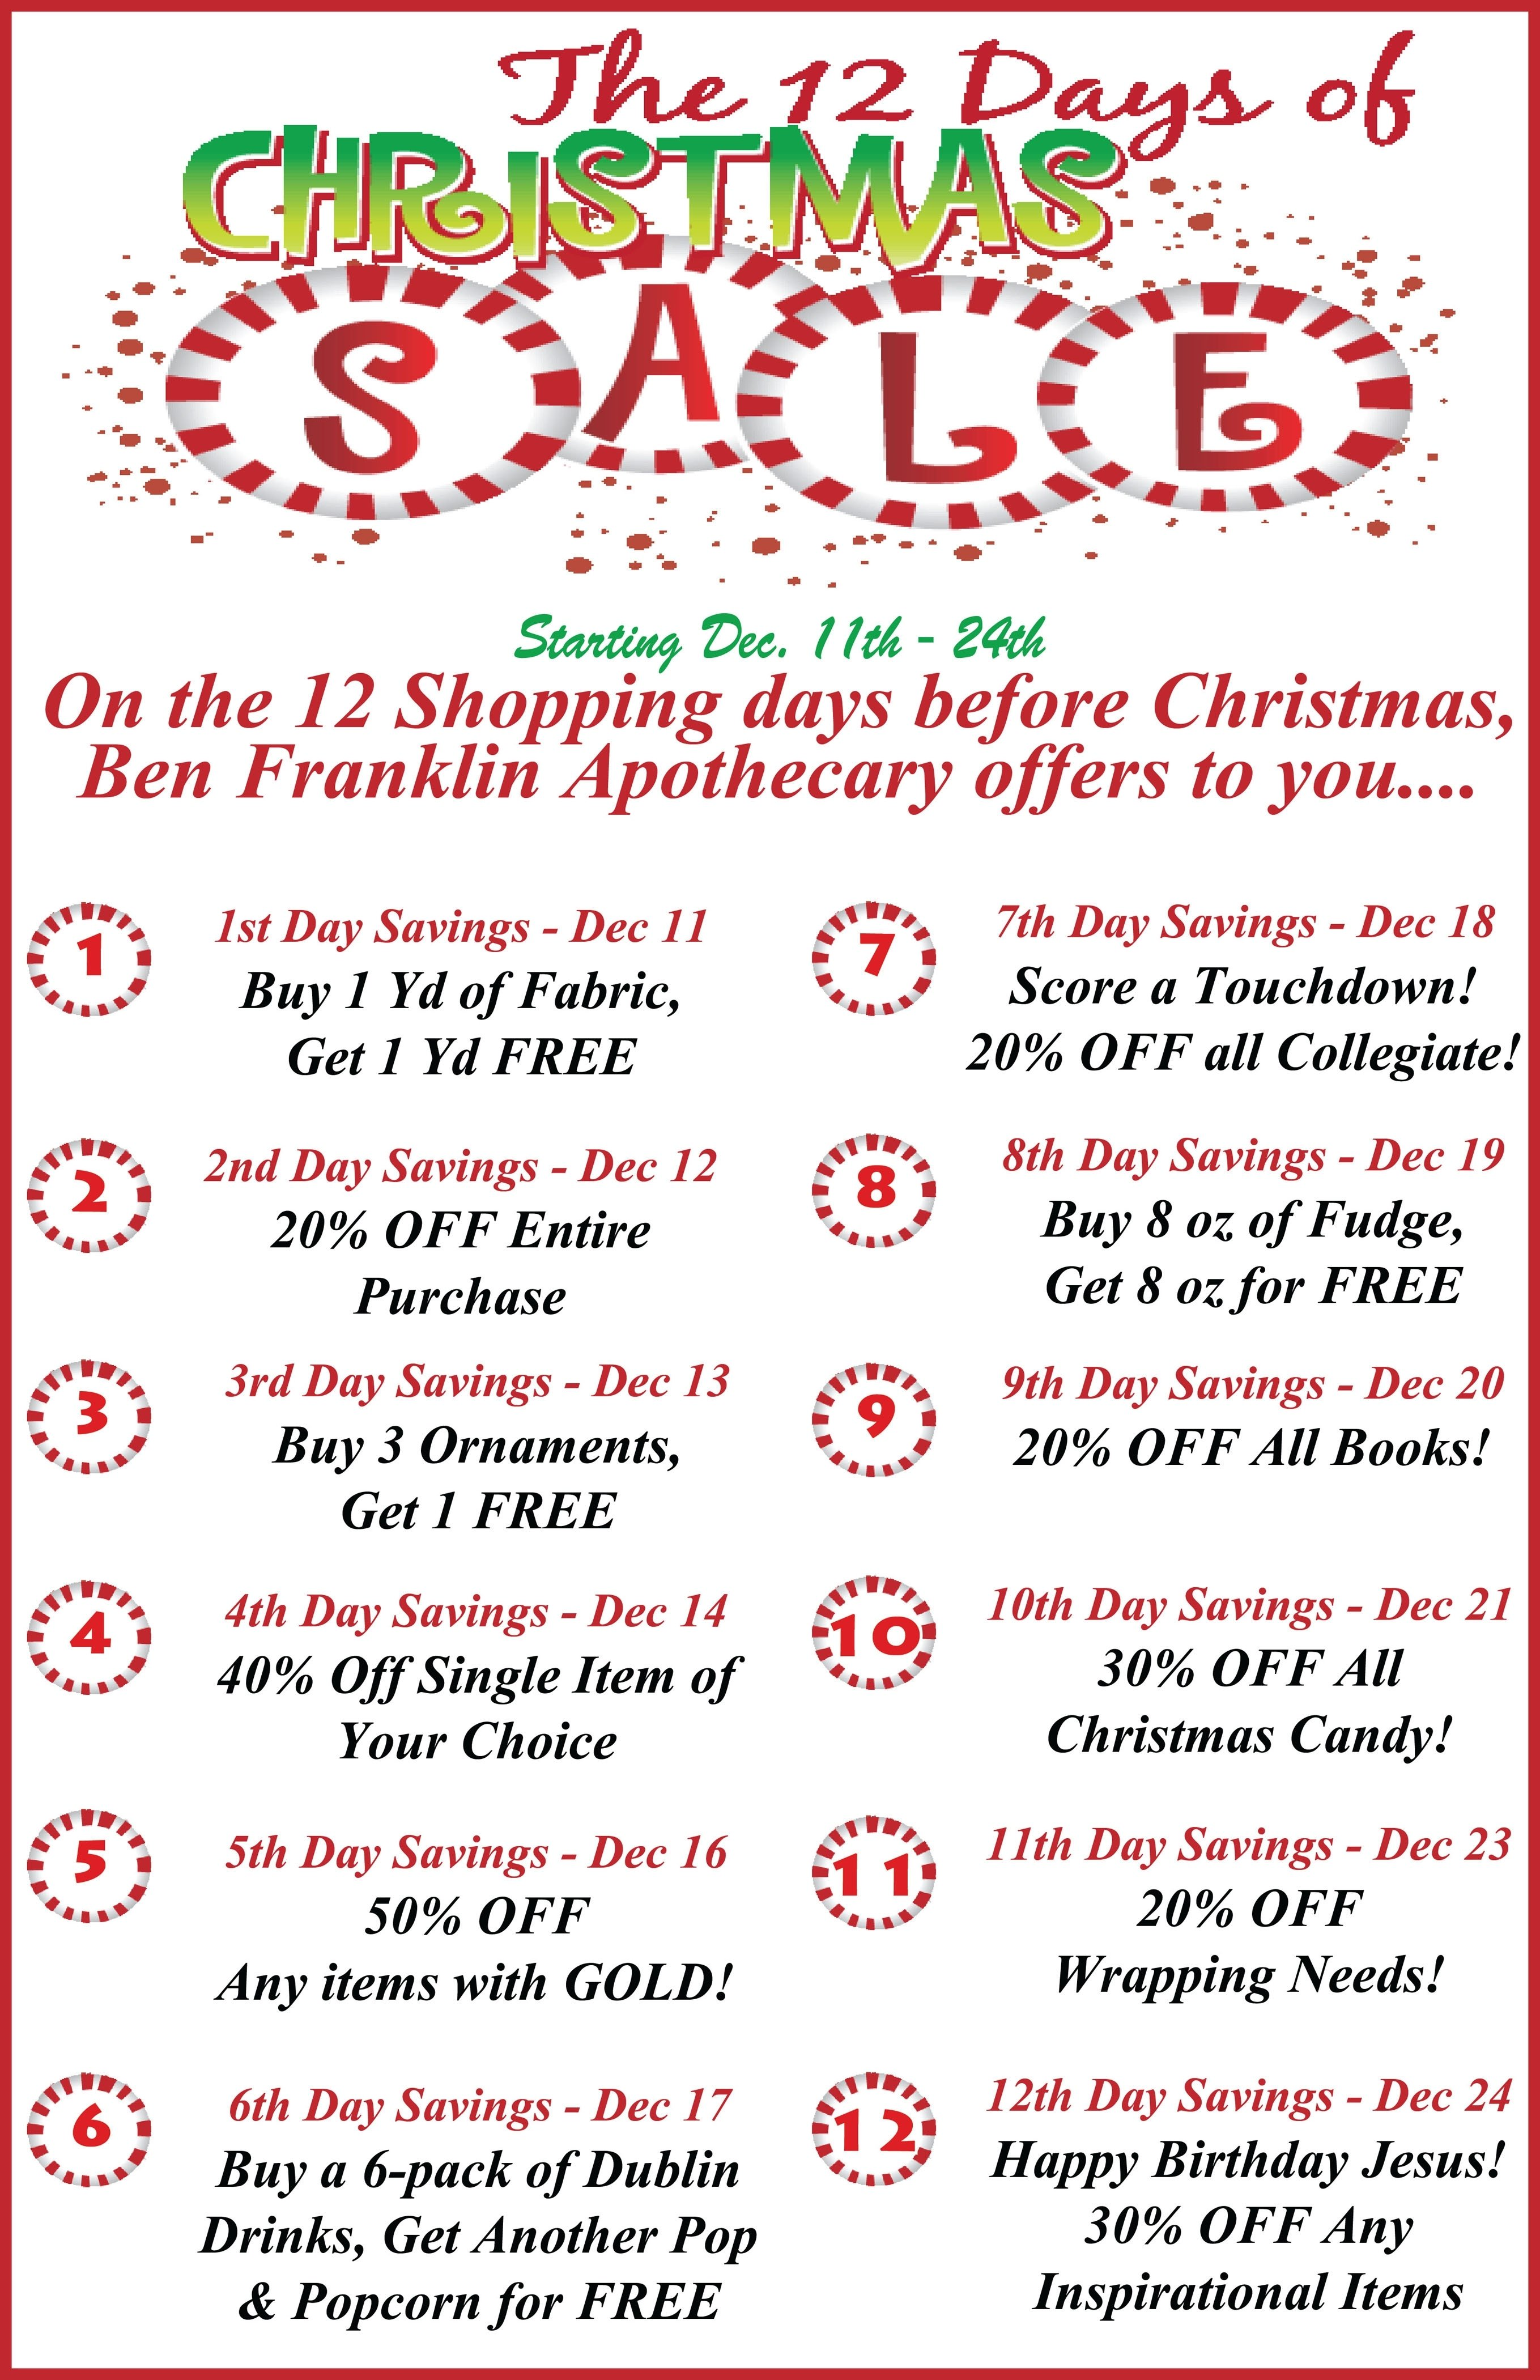 10 Attractive Gift Exchange Ideas For Christmas unique gift ideas ben franklin apothecary blog 1 2021